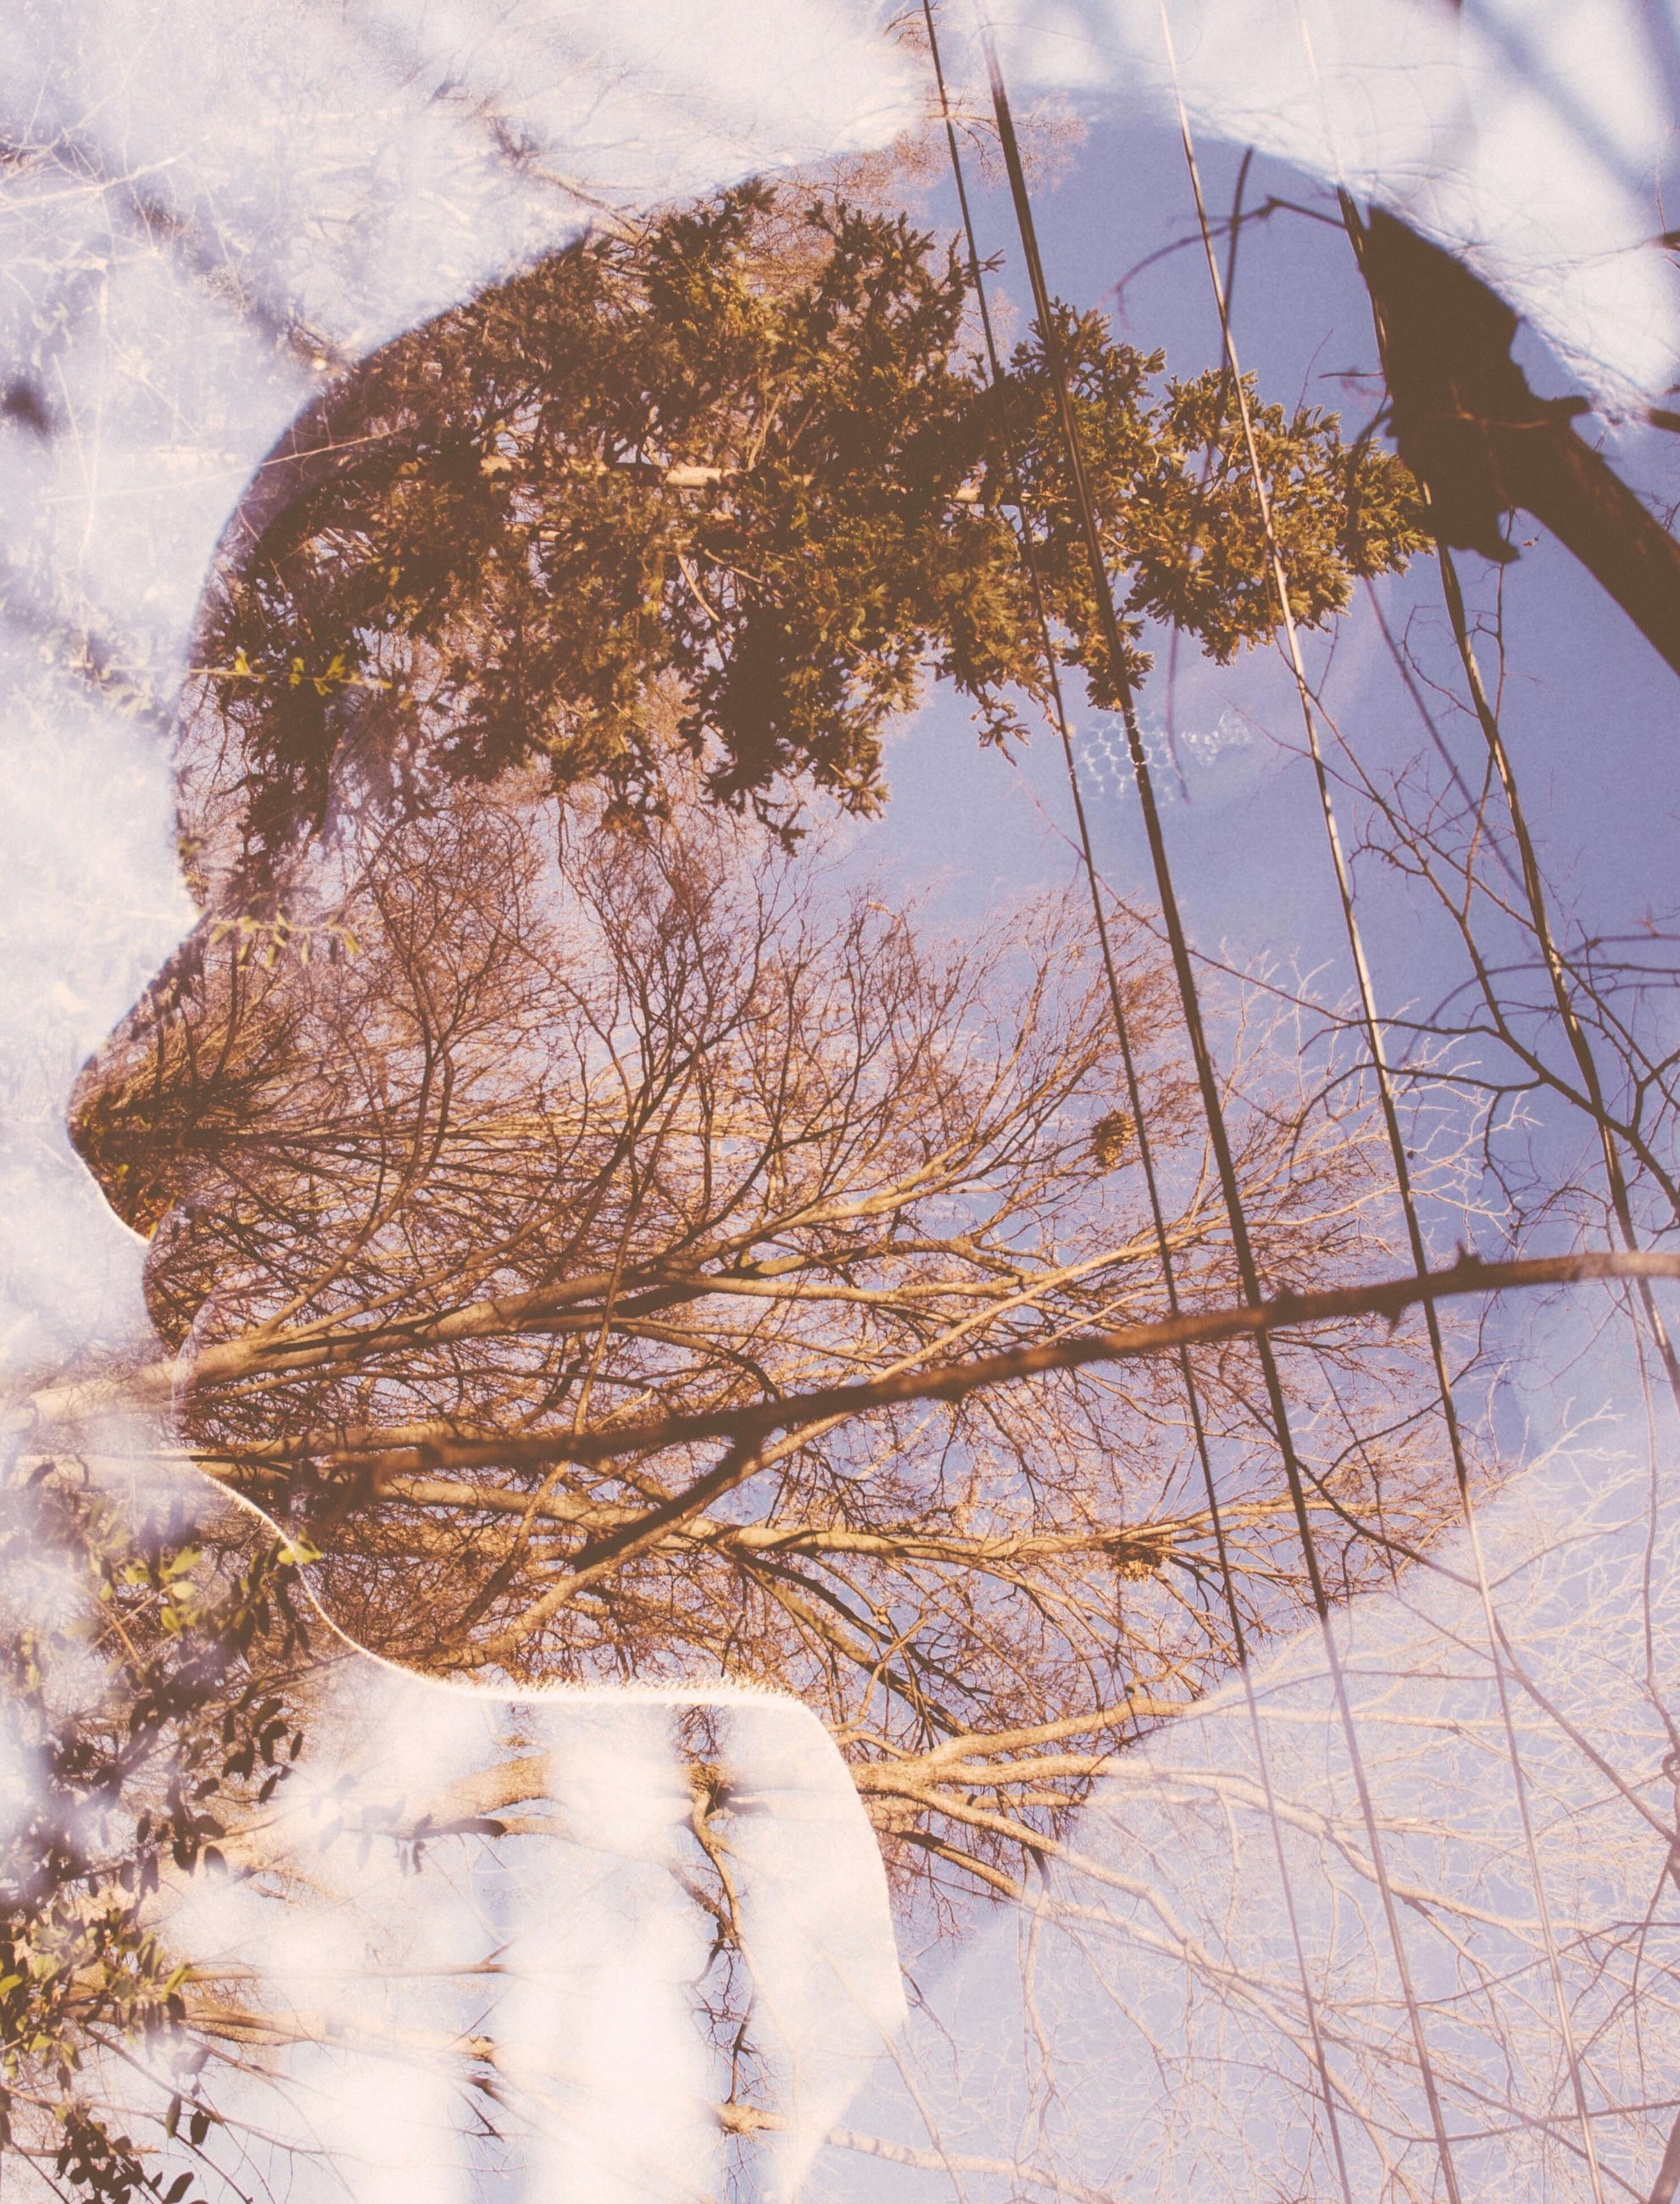 reflection, water, tree, day, nature, sky, outdoors, growth, puddle, no people, tranquility, close-up, plant, built structure, leaf, low angle view, branch, sunlight, season, lake